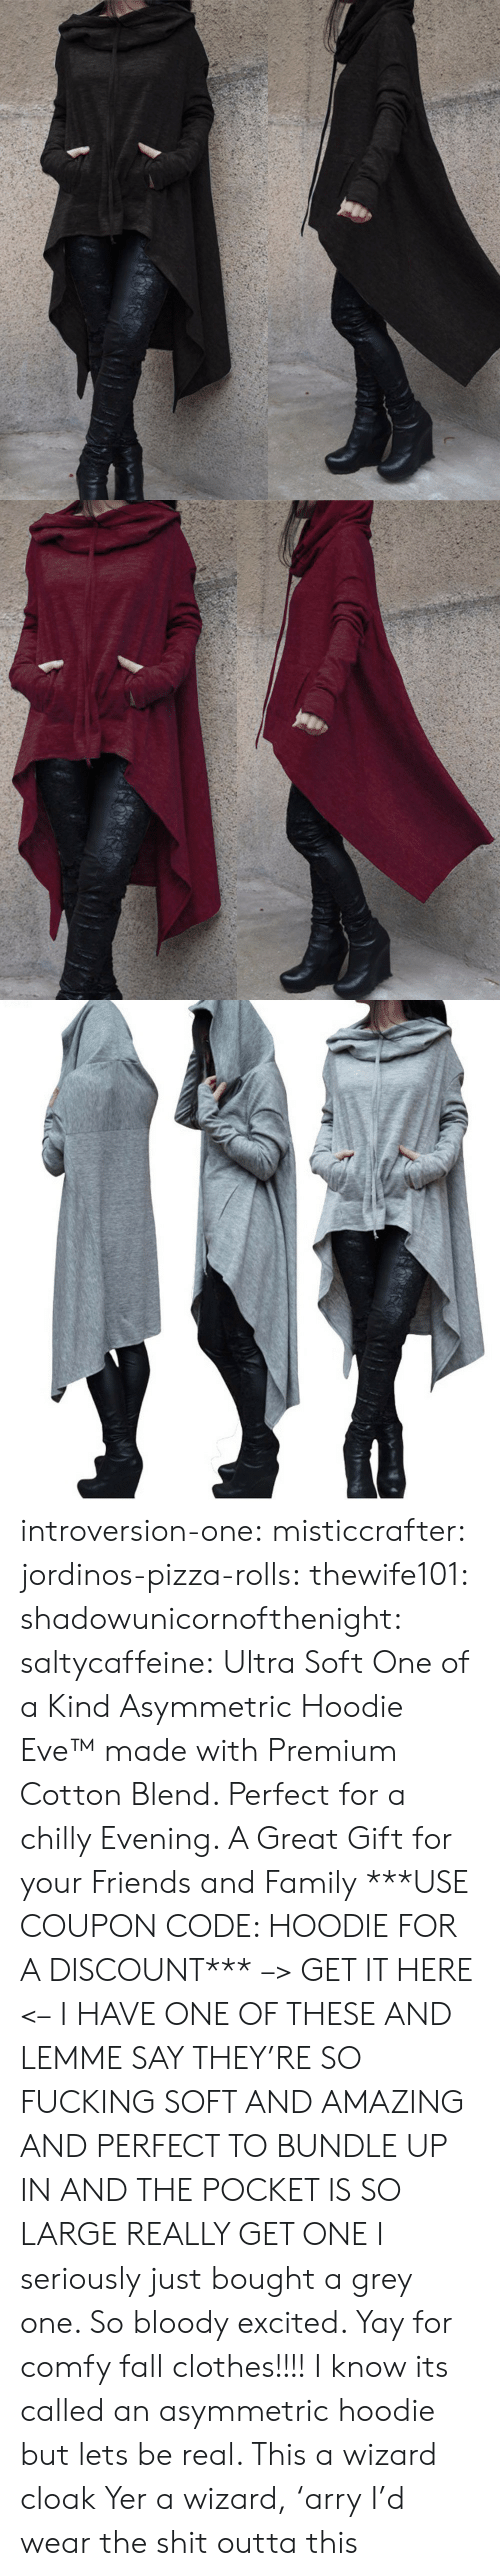 Outta: introversion-one:  misticcrafter:  jordinos-pizza-rolls:  thewife101:  shadowunicornofthenight:  saltycaffeine:  Ultra Soft One of a Kind Asymmetric Hoodie Eve™made with Premium Cotton Blend. Perfect for a chilly Evening. A Great Gift for your Friends and Family ***USE COUPON CODE: HOODIE FOR A DISCOUNT*** –> GET IT HERE <–   I HAVE ONE OF THESE AND LEMME SAY THEY'RE SO FUCKING SOFT AND AMAZING AND PERFECT TO BUNDLE UP IN AND THE POCKET IS SO LARGE REALLY GET ONE   I seriously just bought a grey one. So bloody excited. Yay for comfy fall clothes!!!!    I know its called an asymmetric hoodie but lets be real. This a wizard cloak  Yer a wizard,'arry   I'd wear the shit outta this